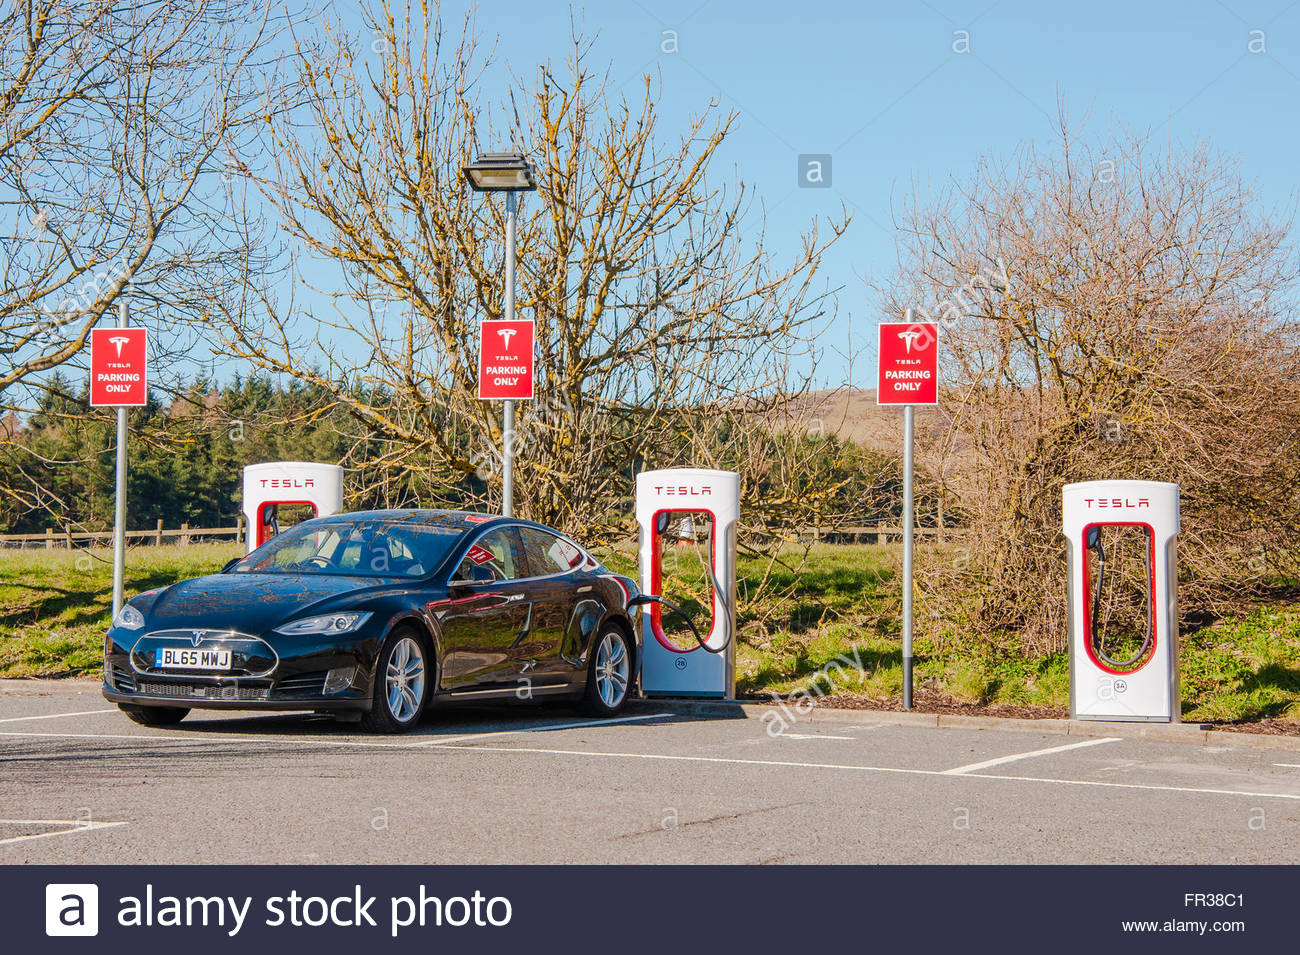 A Black Tesla Model S Electric car being charged on the electric car charging units on the forecourt at Abington - Stock Image